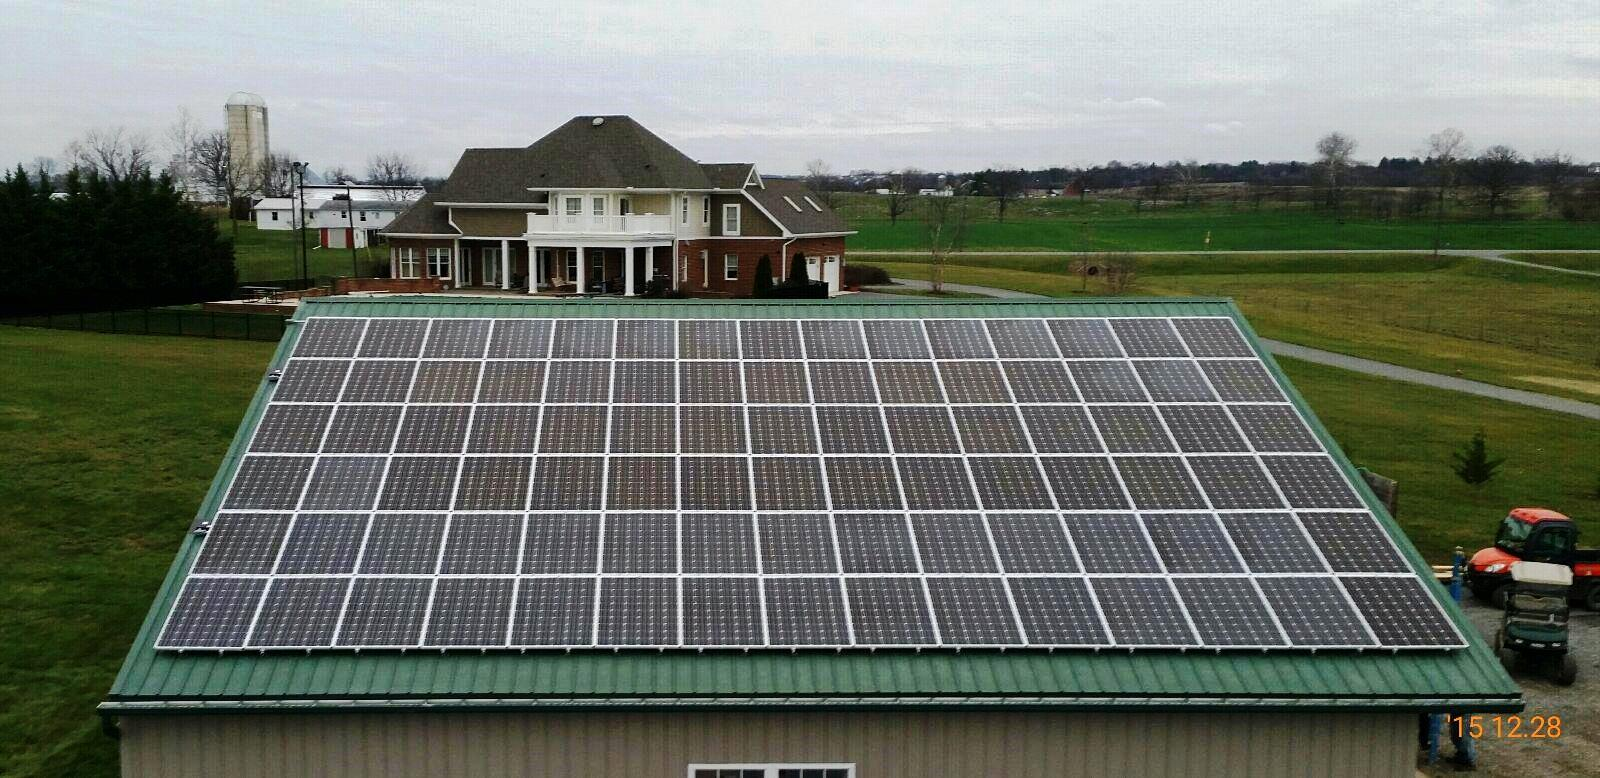 25.65 kW farm system in Hagerstown, Maryland